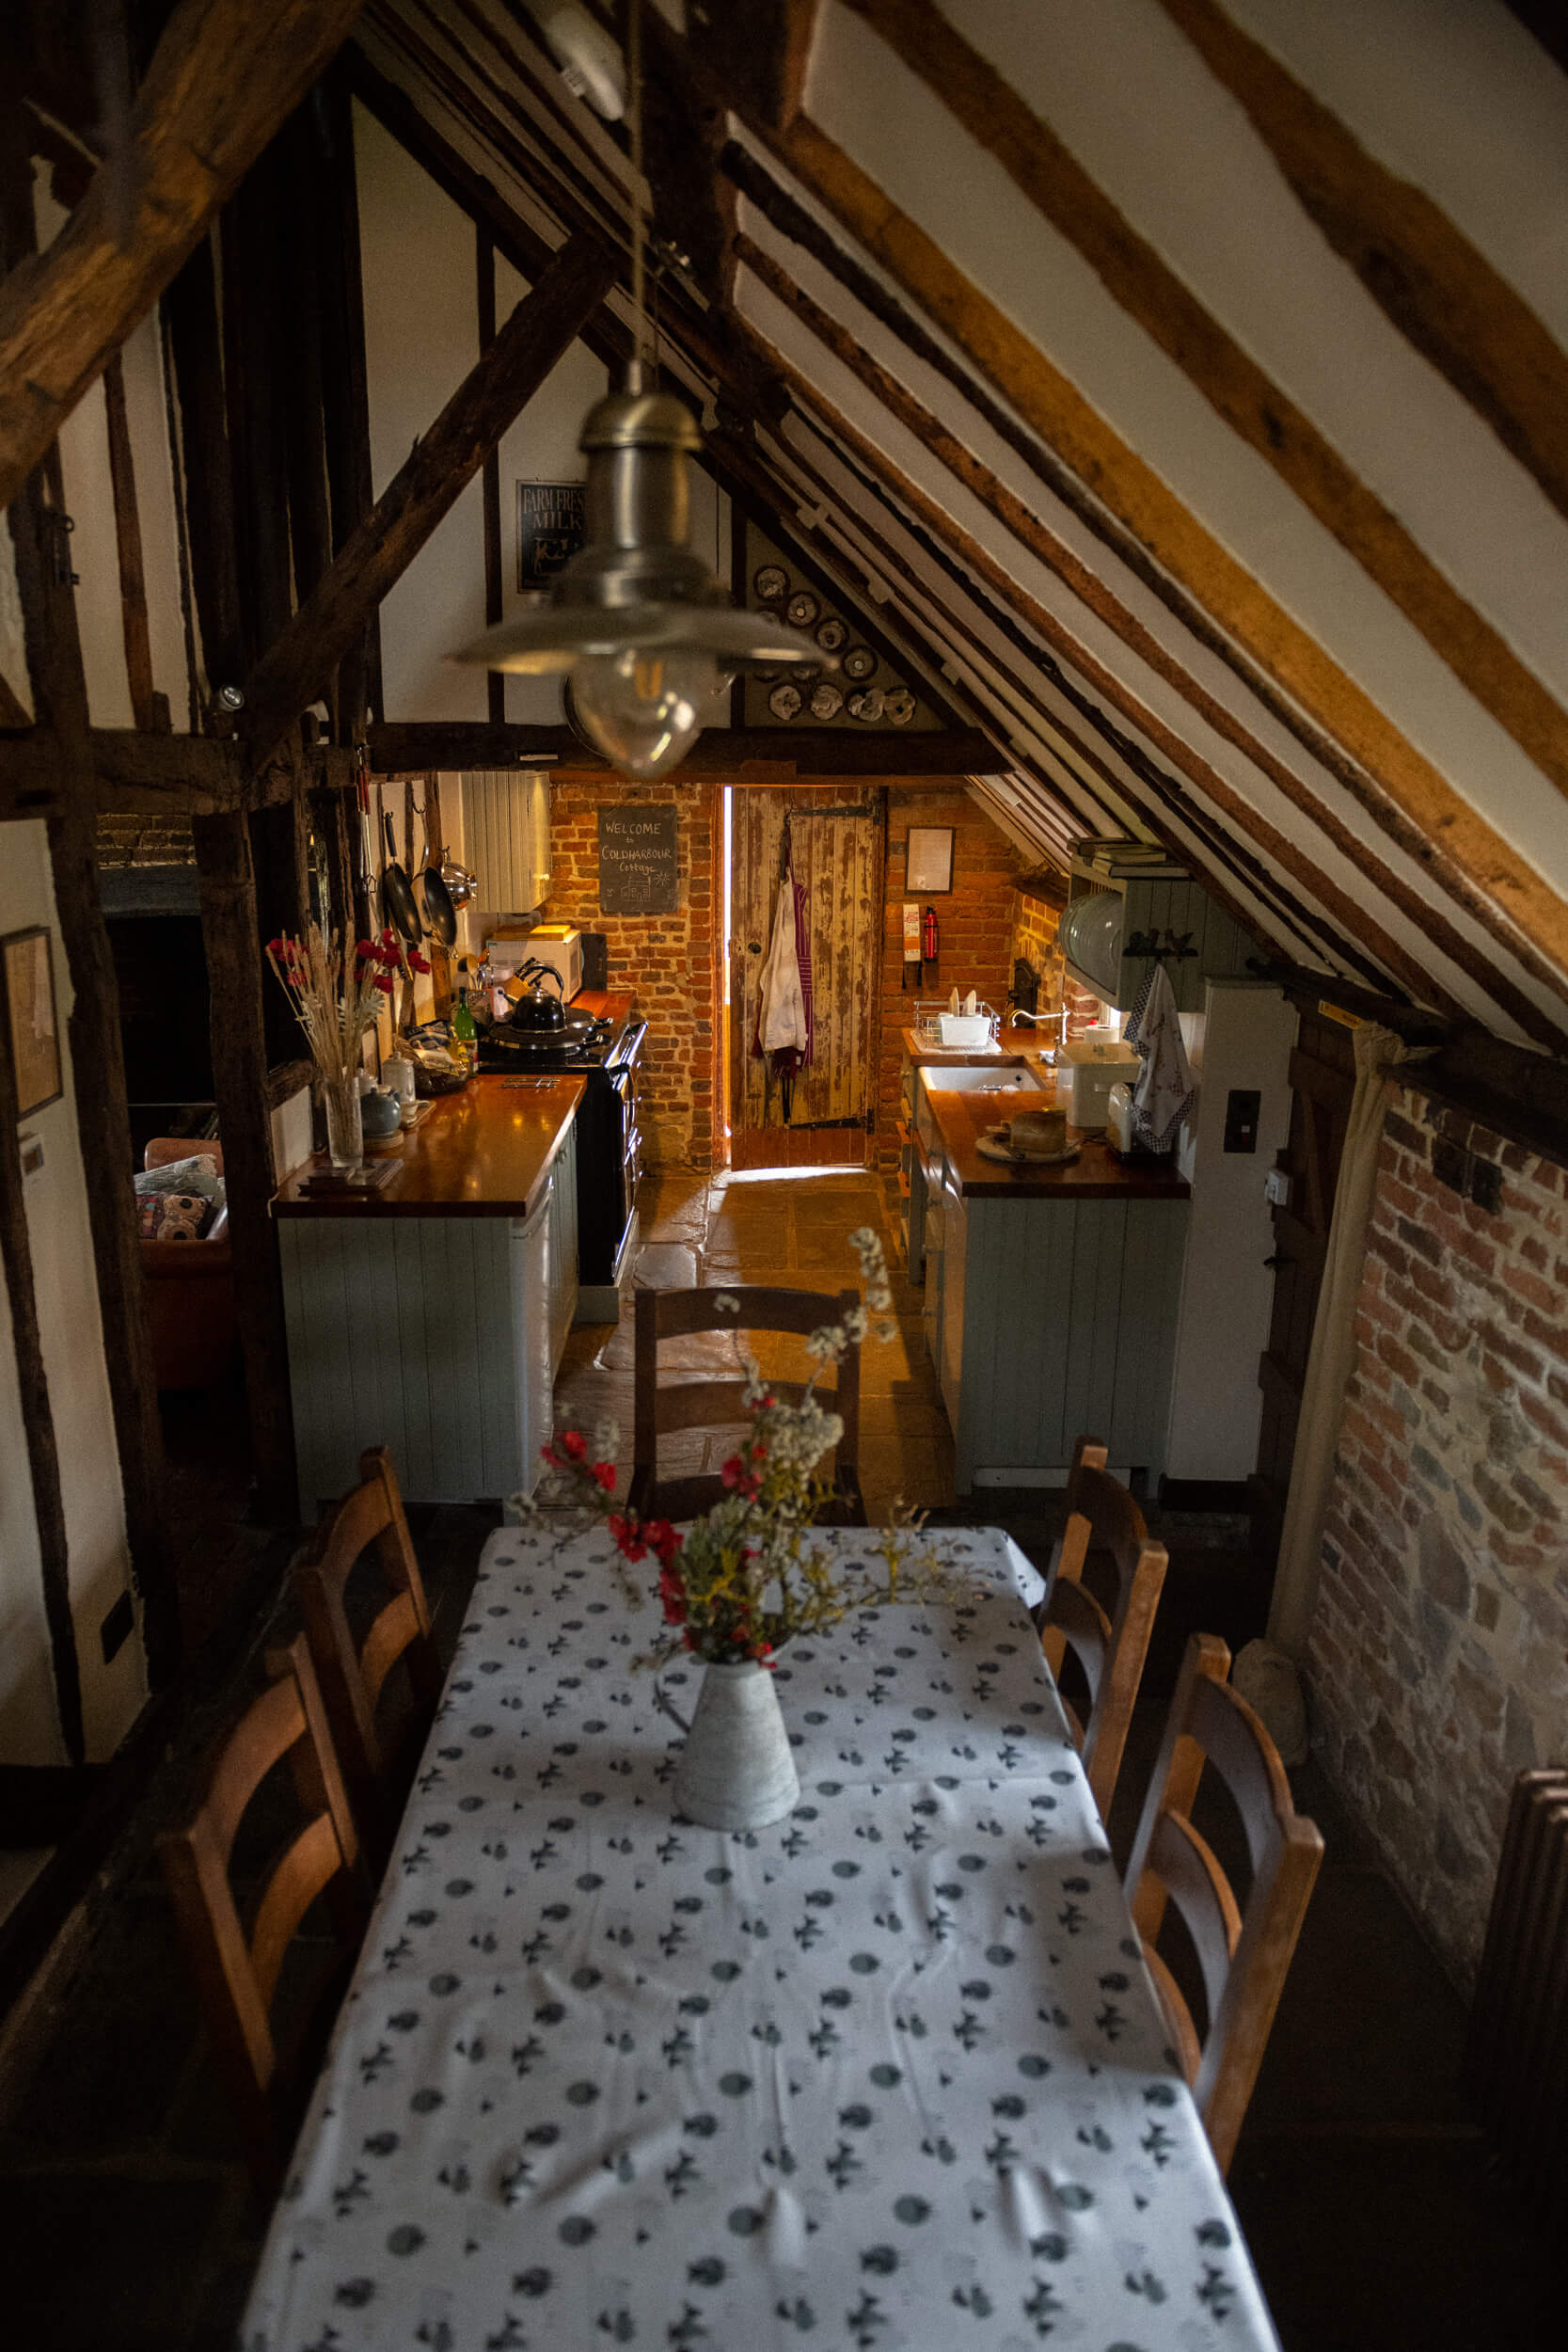 Looking down on the cottage kitchen